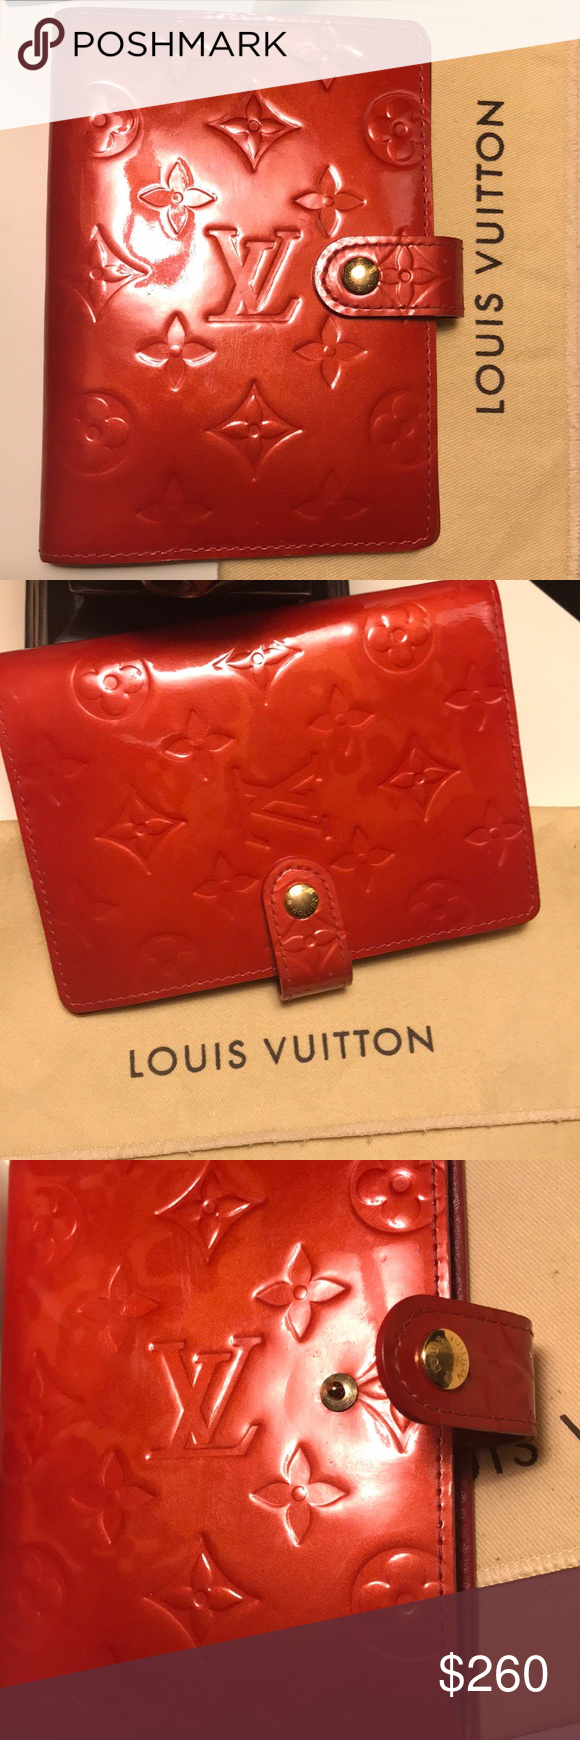 Authentic Lv Vernis Red Agenda Pm This Is Preloved Vernis Agenda Wallet It Is Still Good For Everyday Use A Louis Vuitton Bag Louis Vuitton Red Stuff To Buy